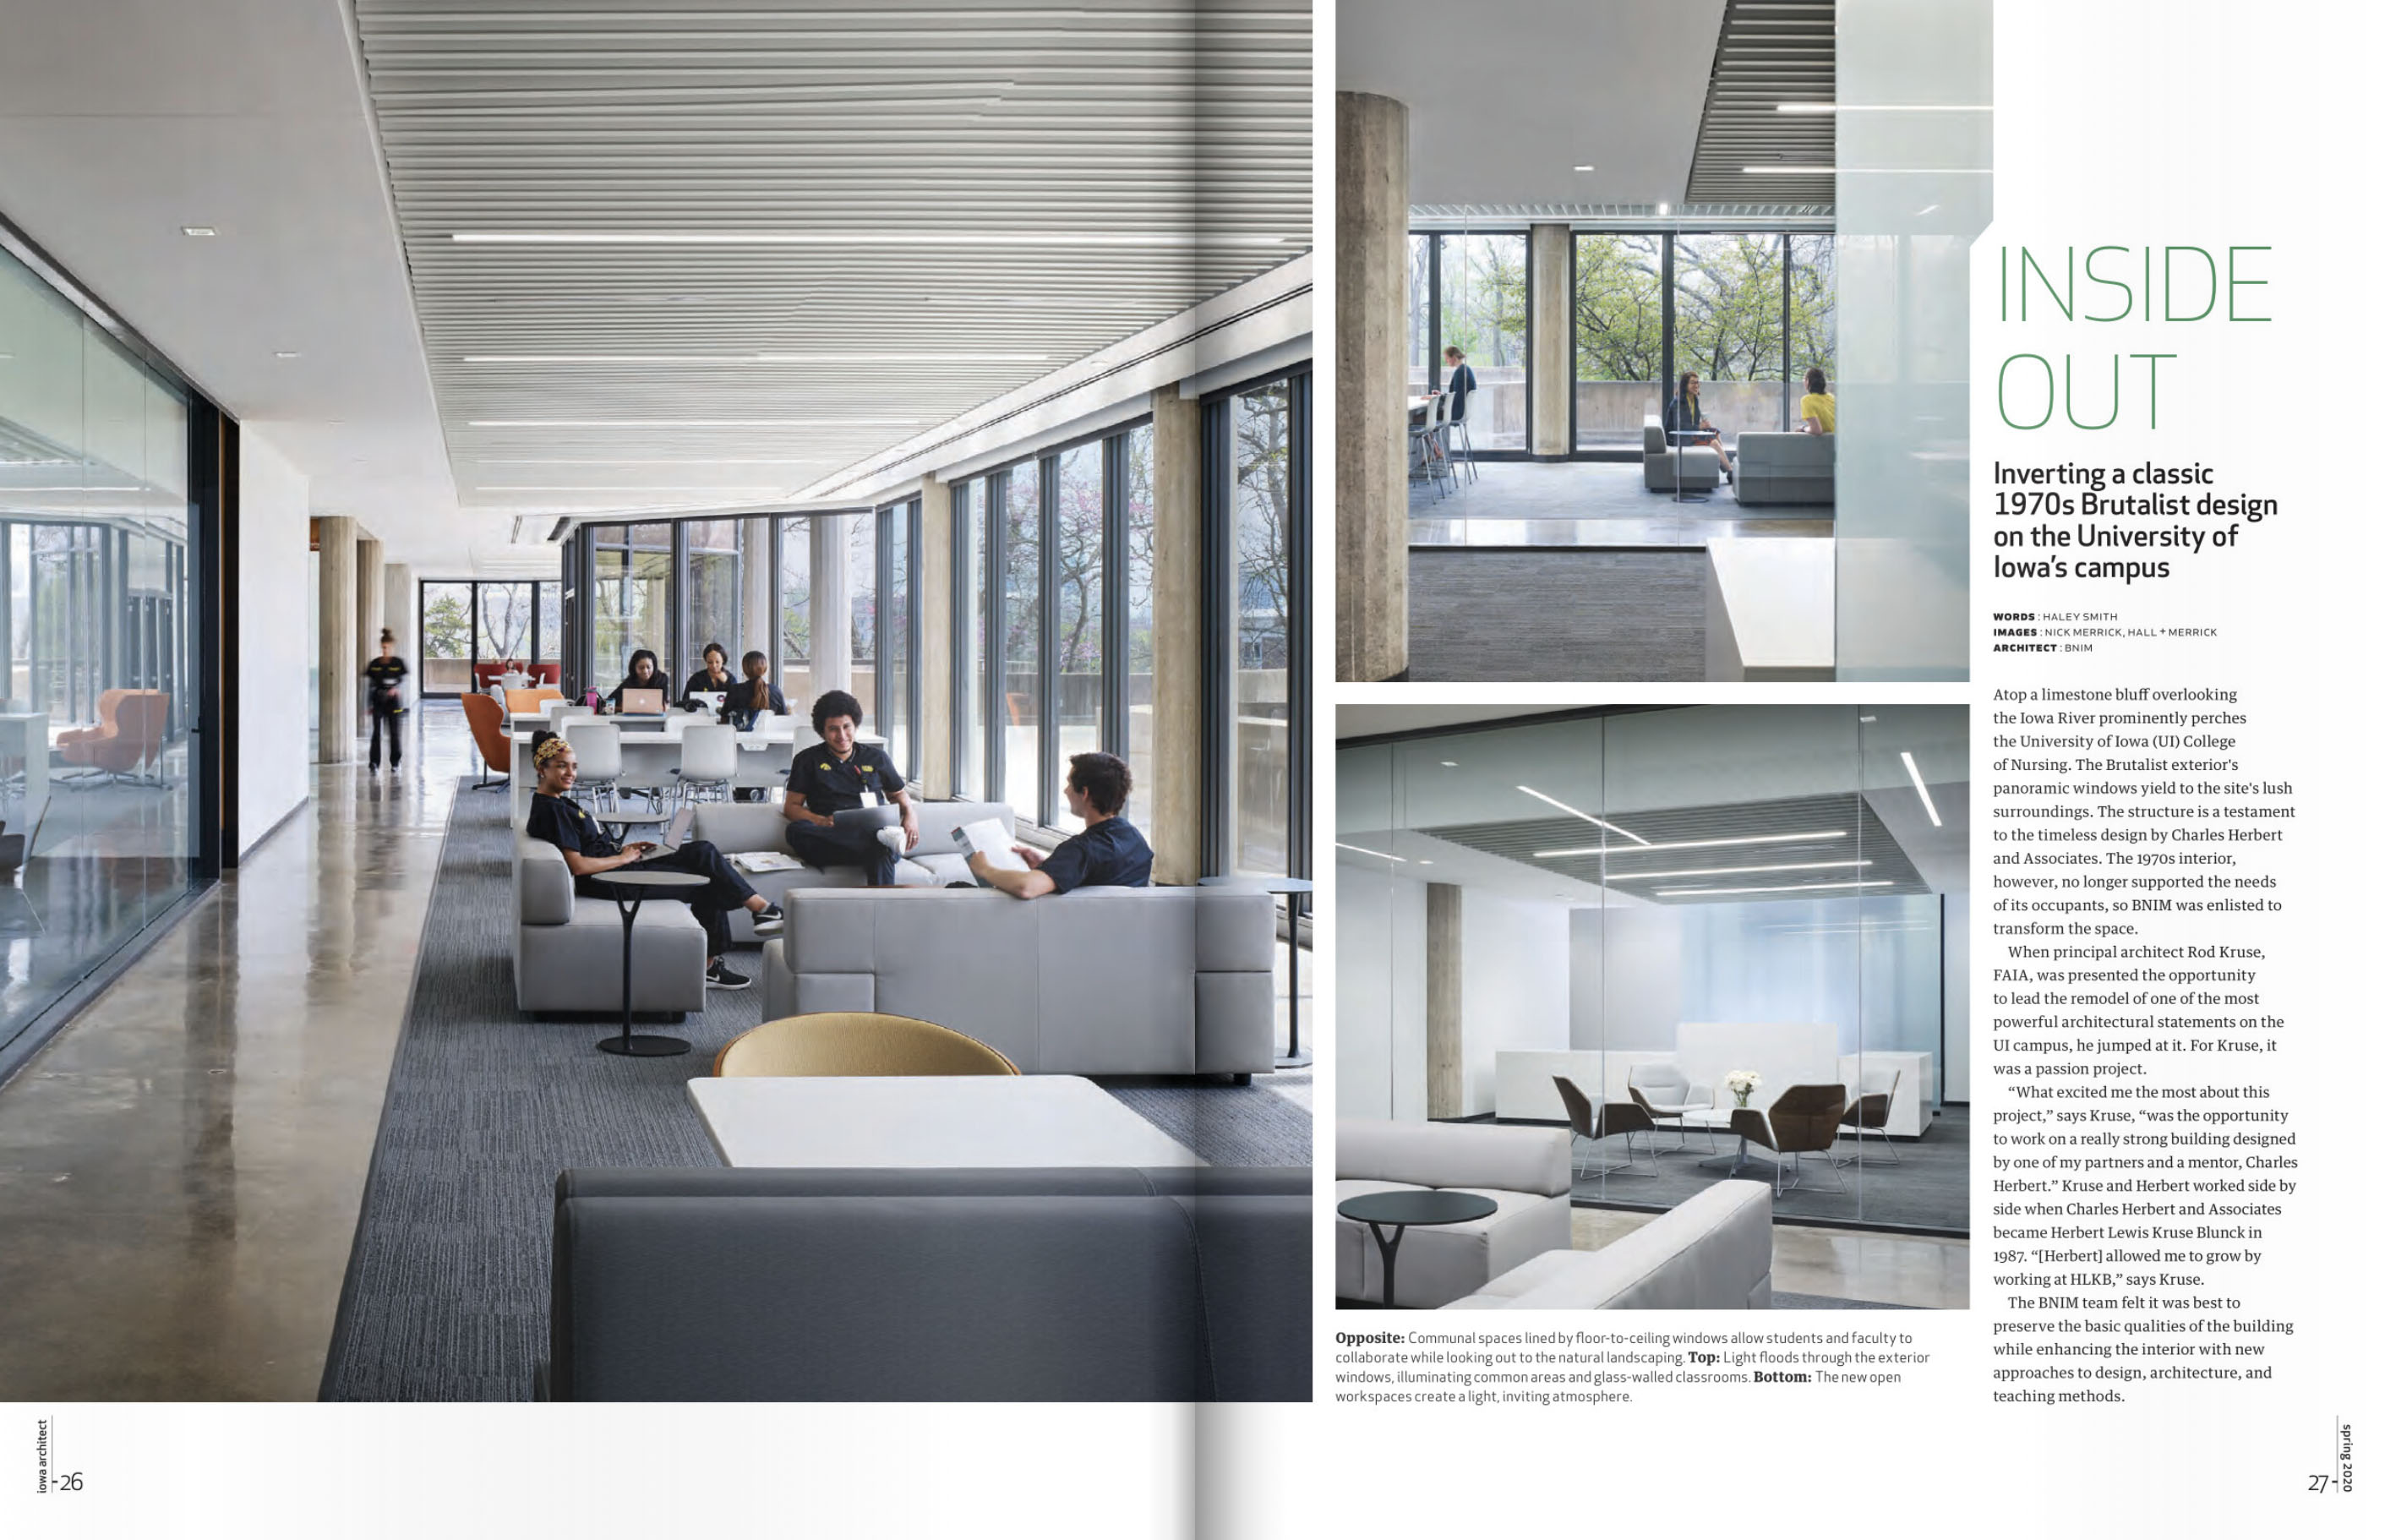 College of Nursing Modifications featured in Iowa Architect Spring 2020 Issue